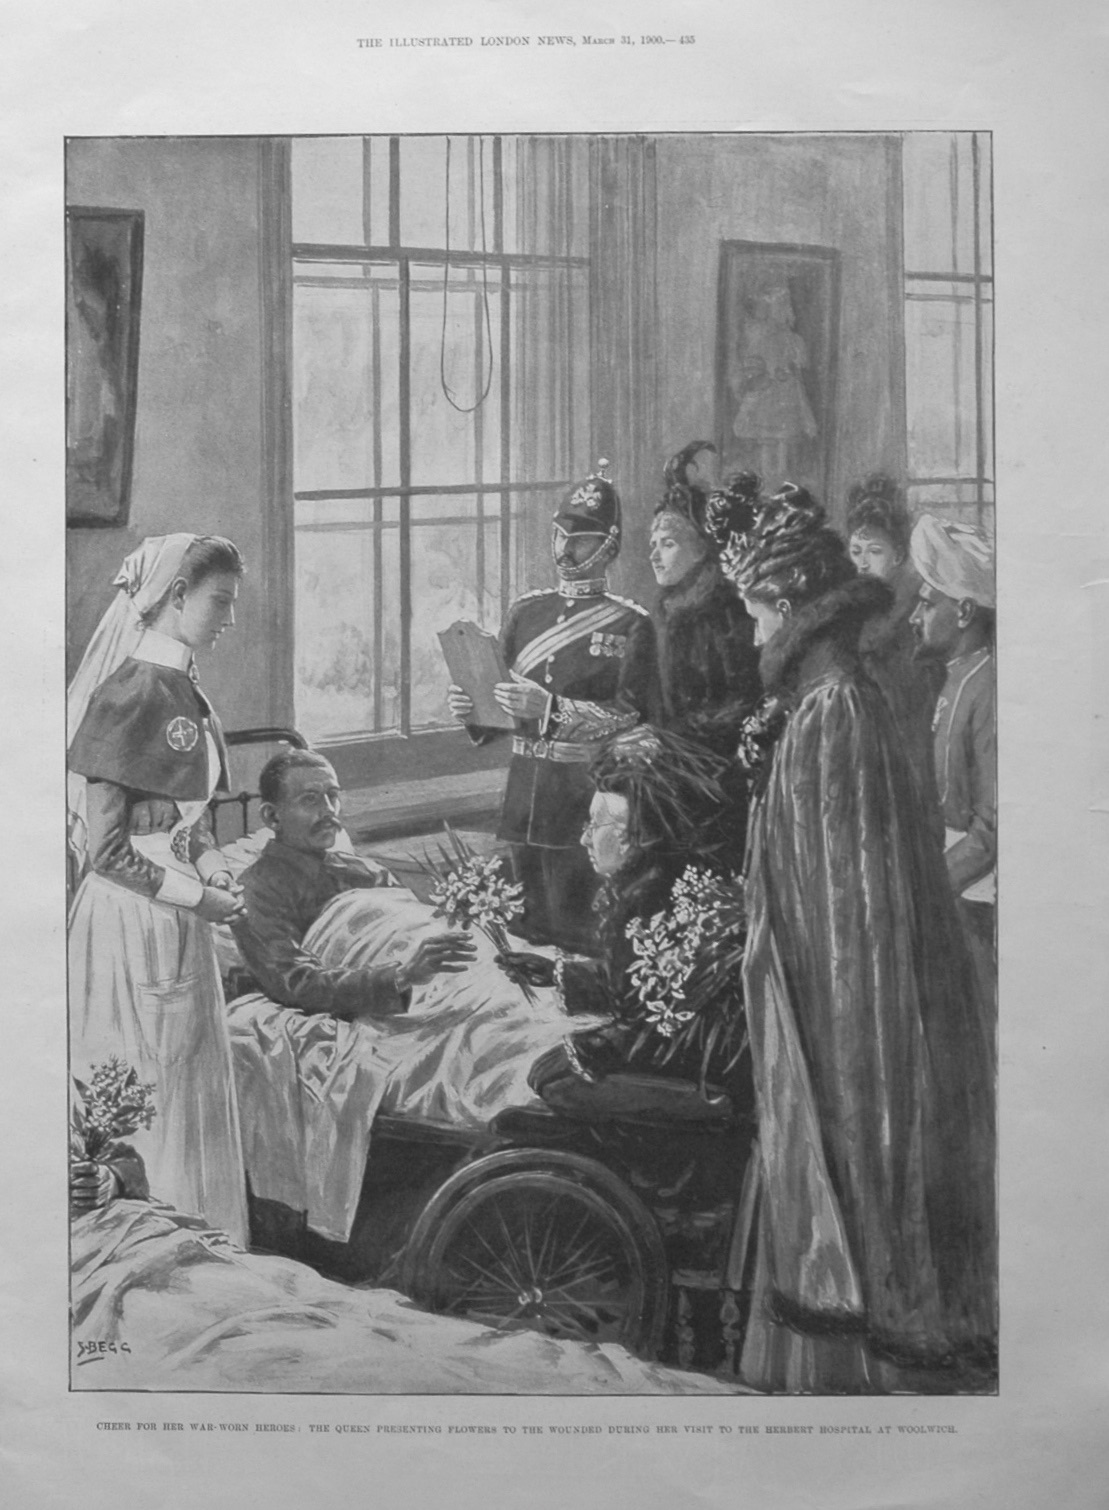 Cheer for Her War-Worn Heroes : The Queen Presenting Flowers to the Wounded